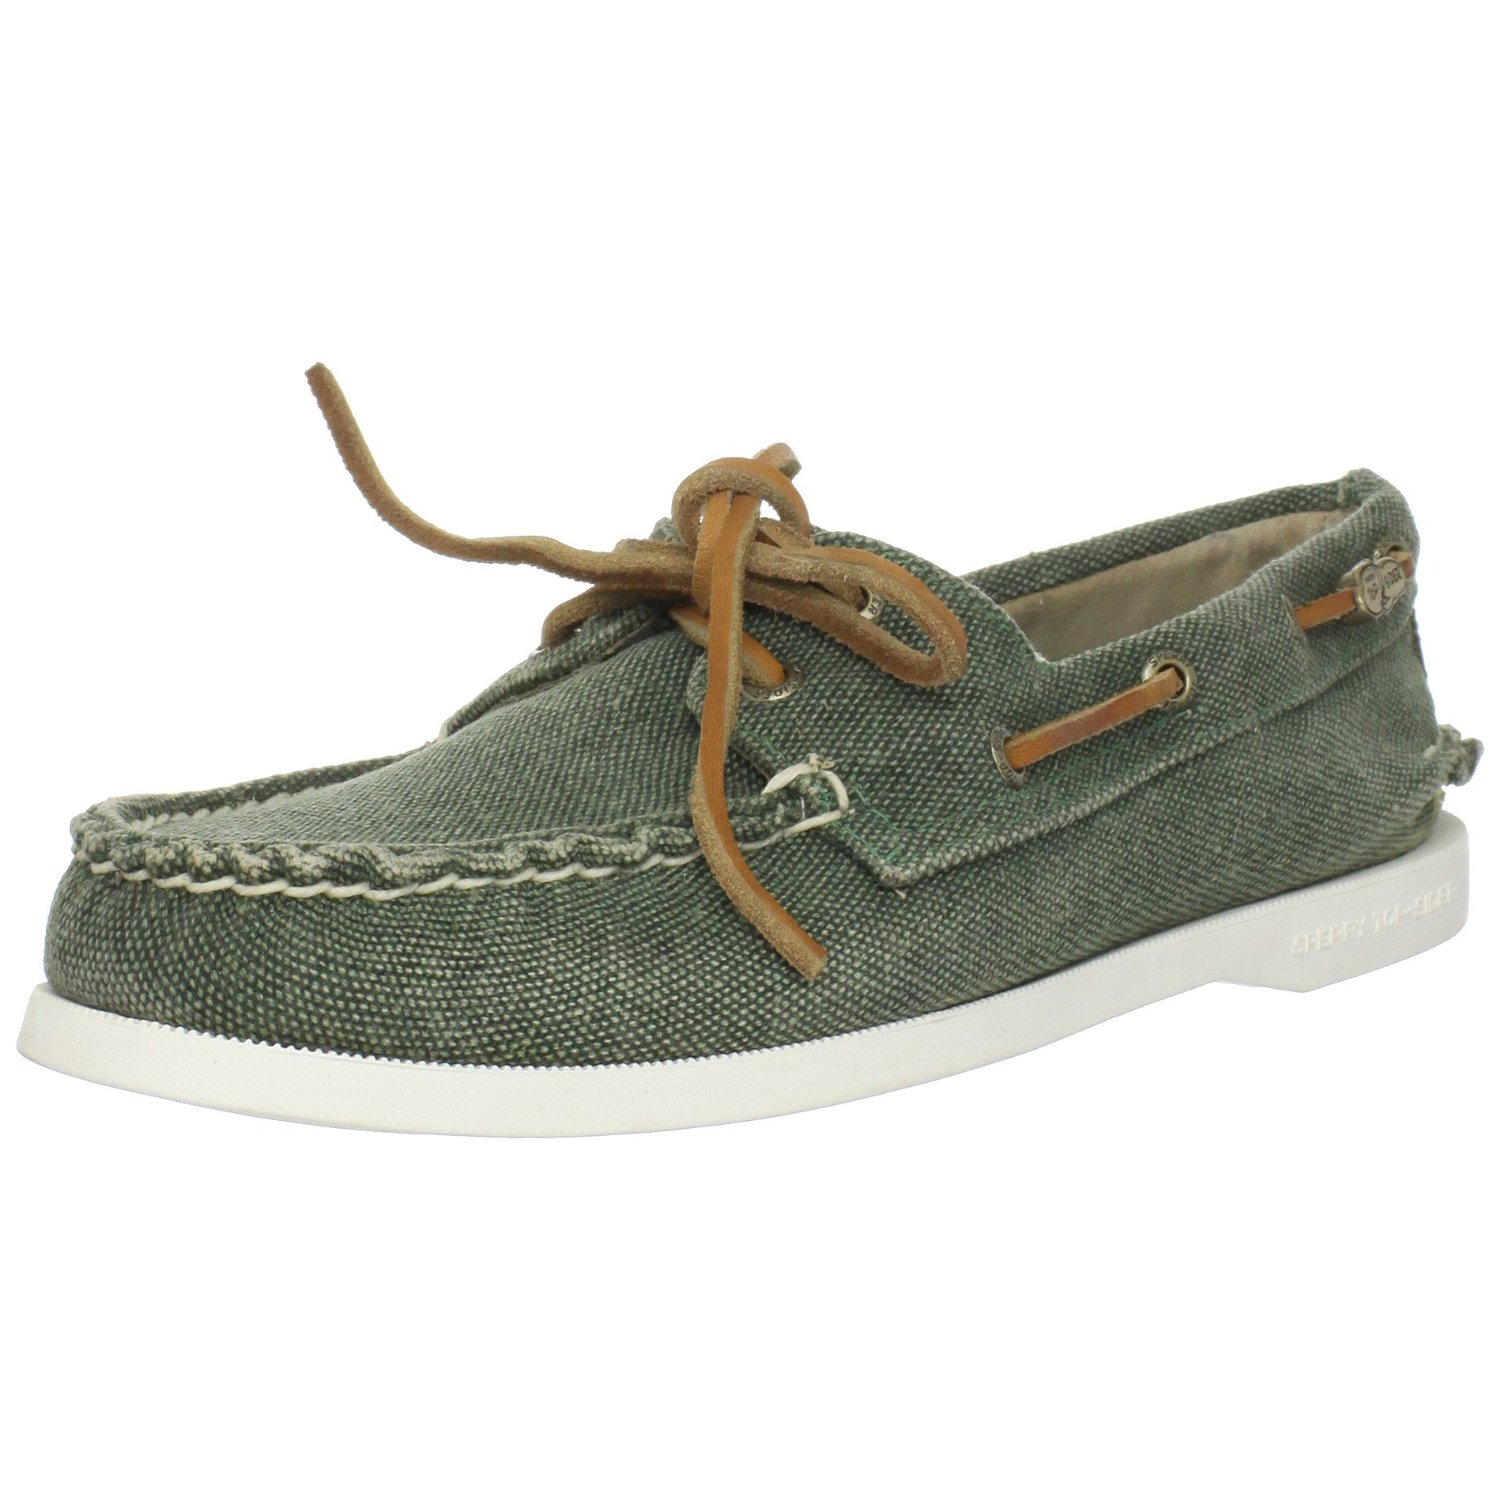 Sperry Top-sider Sperry Topsider Womens Ao Canvas Boat Shoe In Green (olive) | Lyst